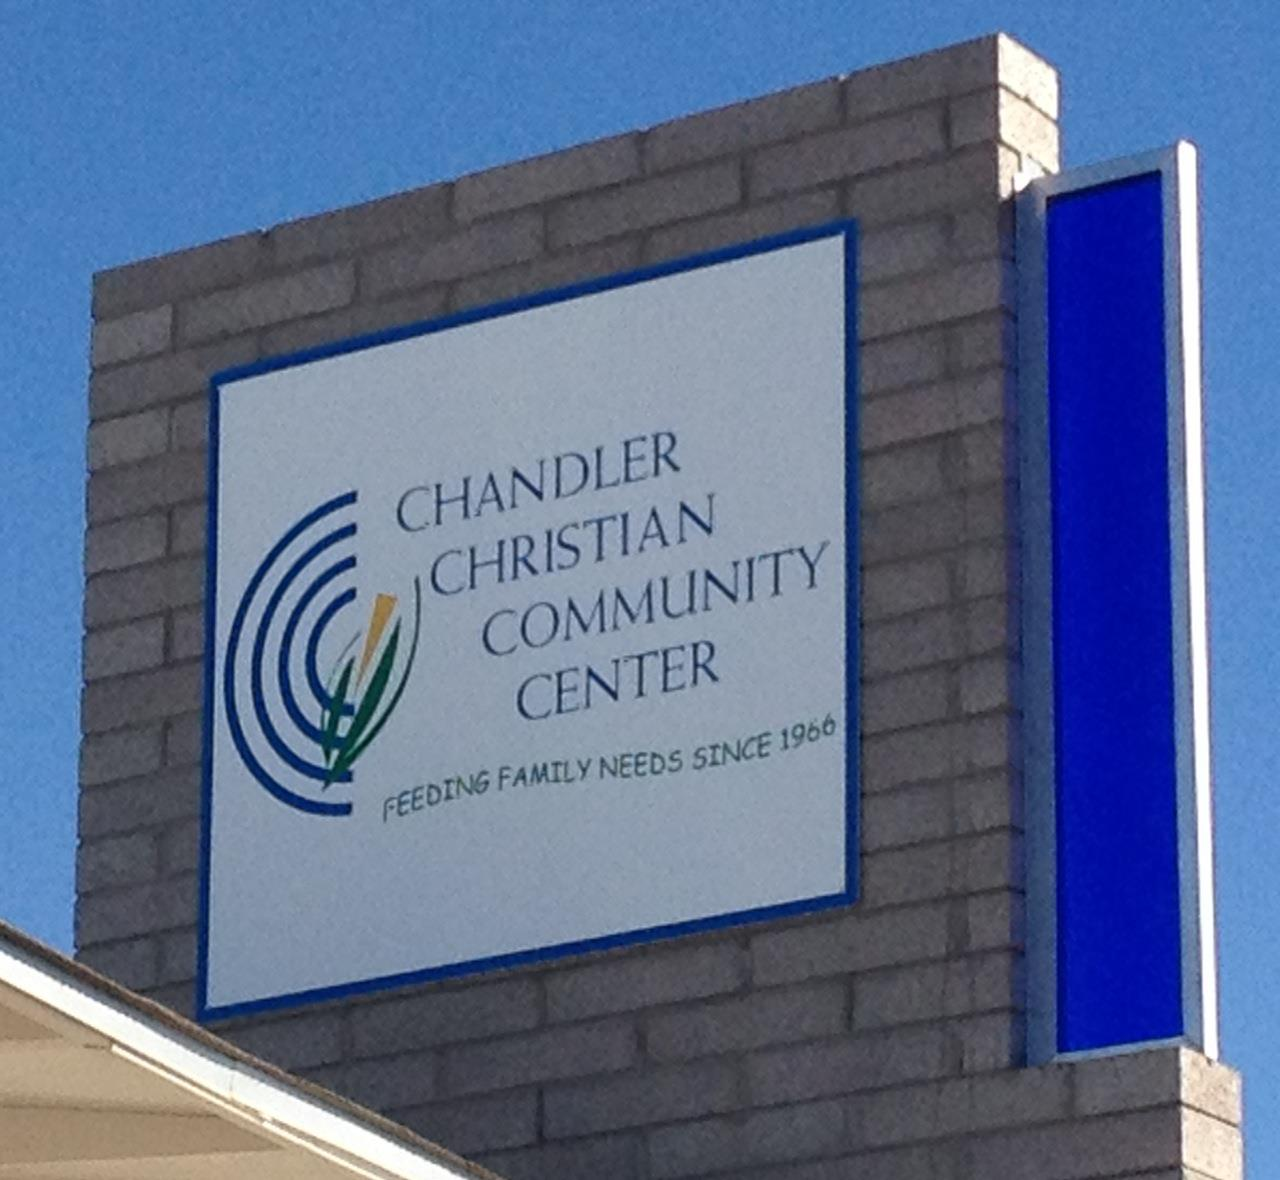 Chandler Christian Community Center